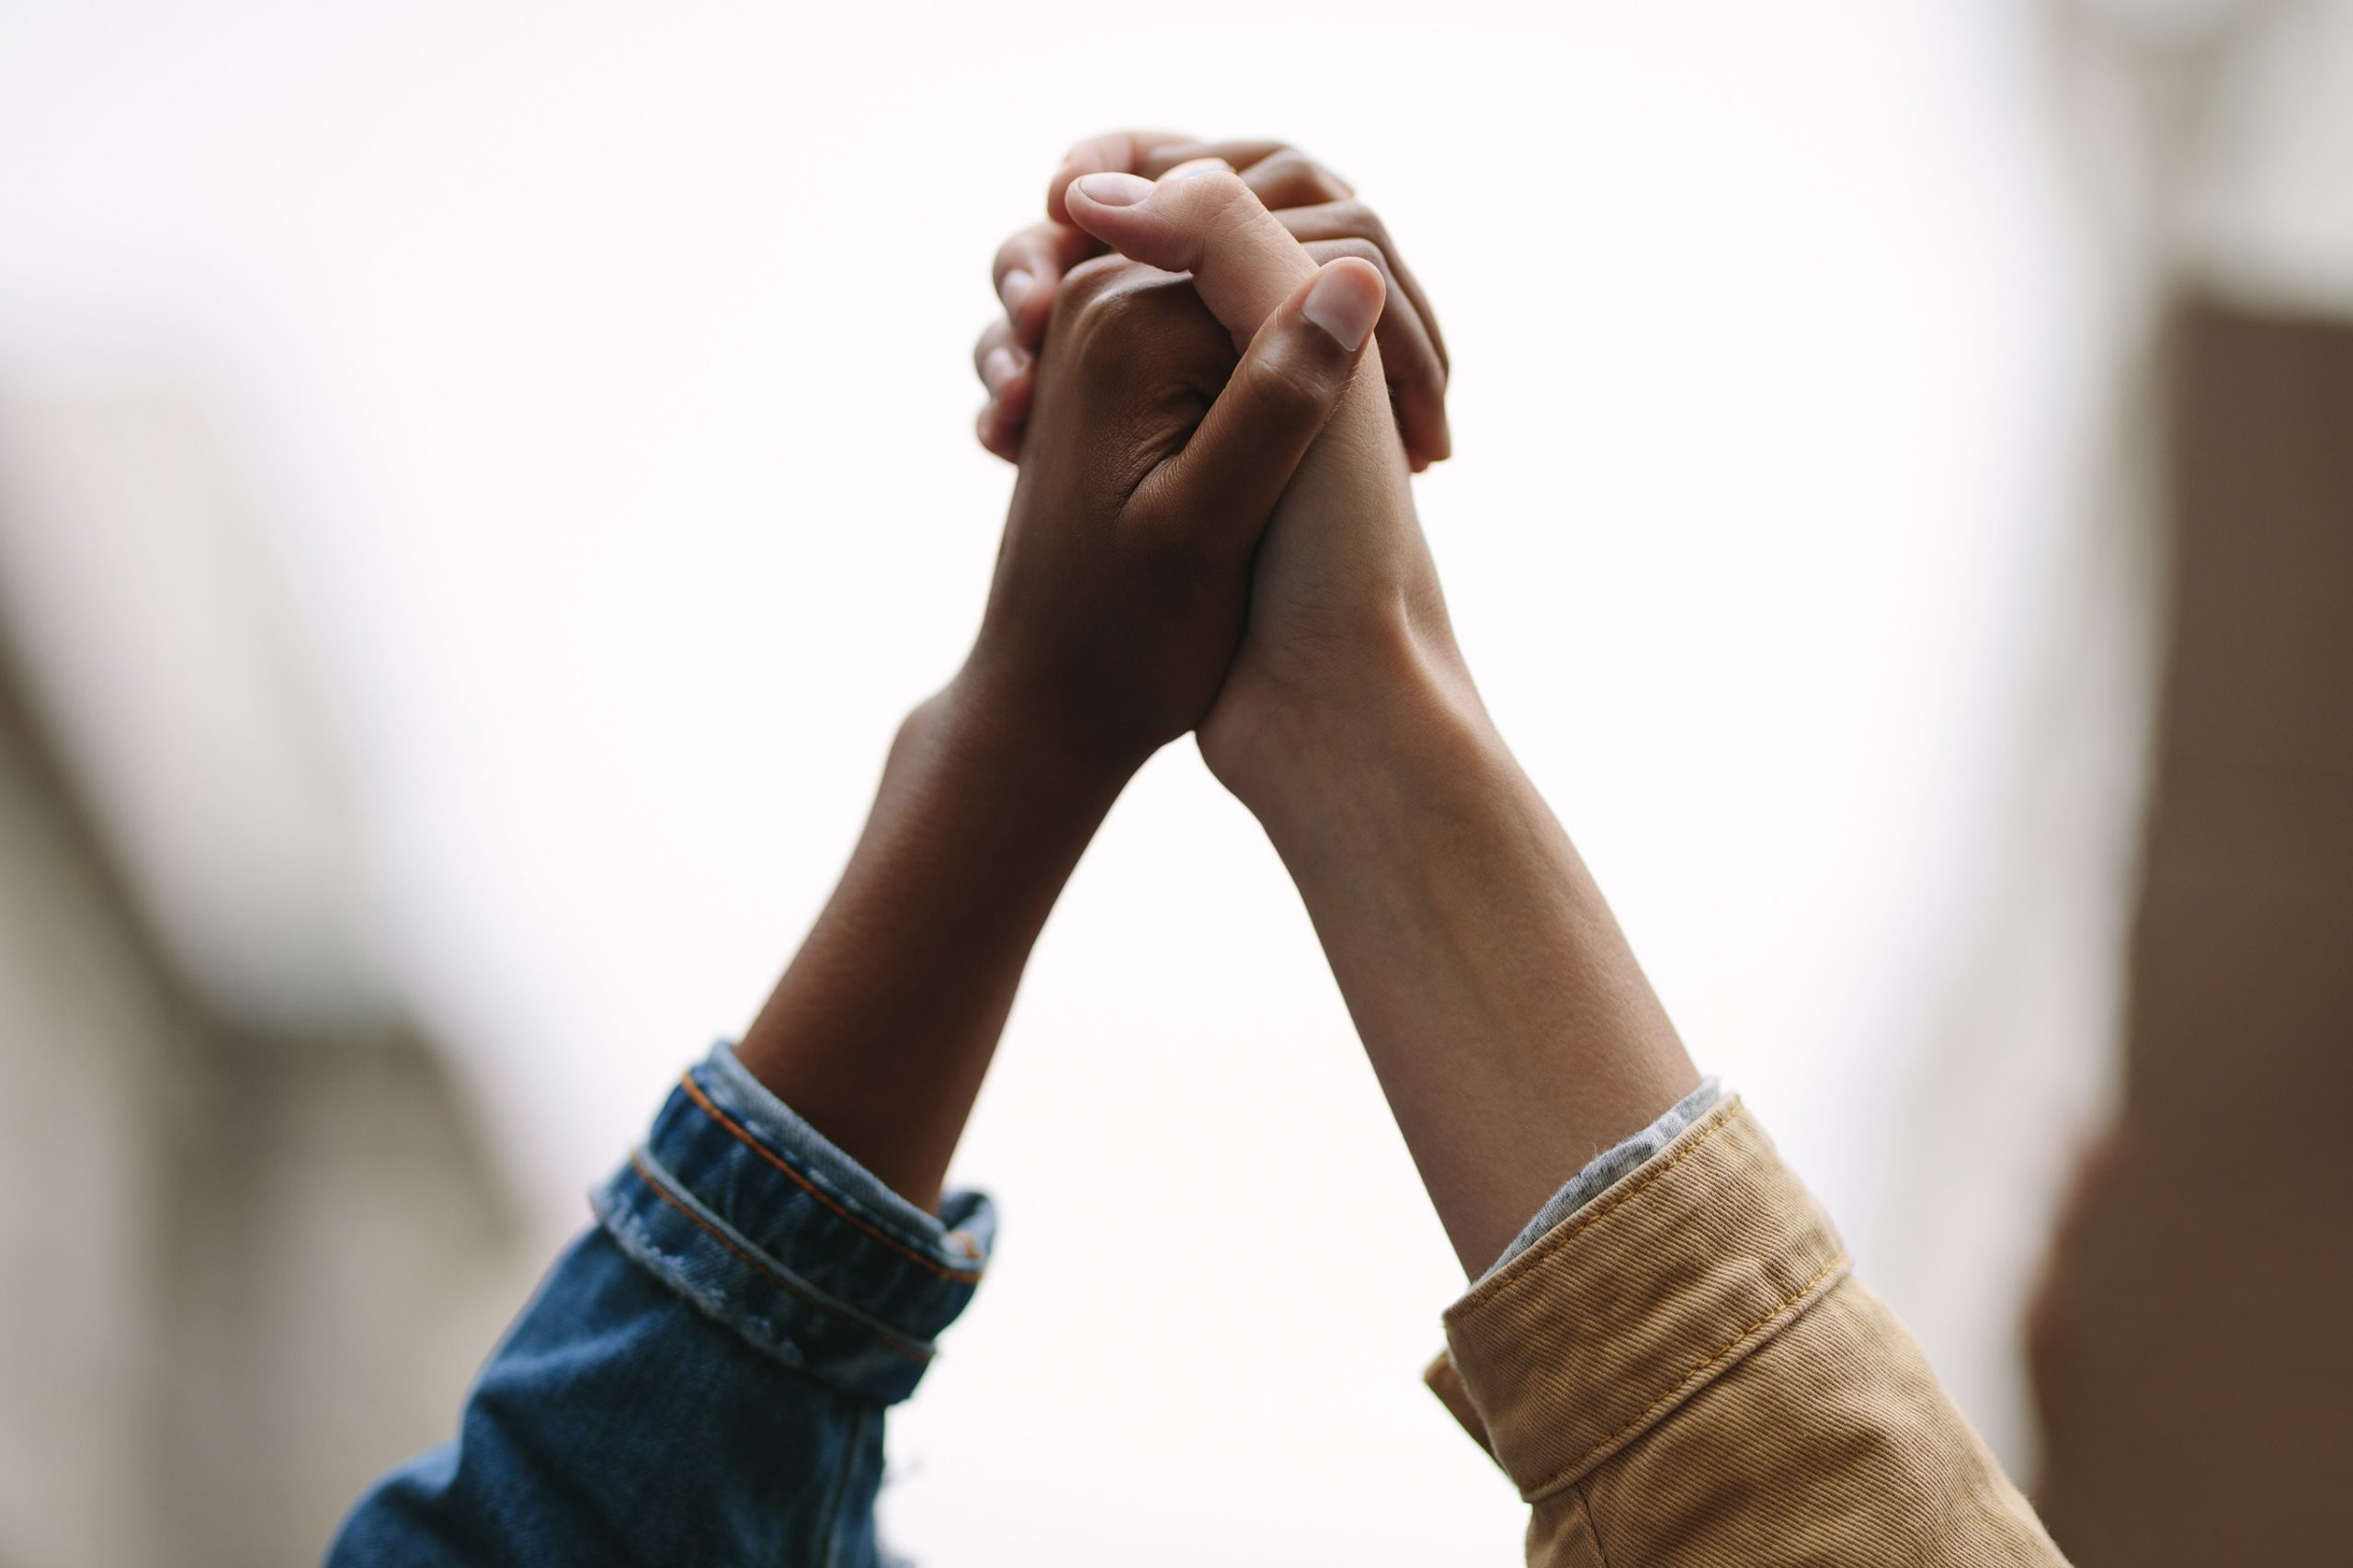 Symbol of unity. Two women activists holding hands. Demonstrators protesting together holding hands.